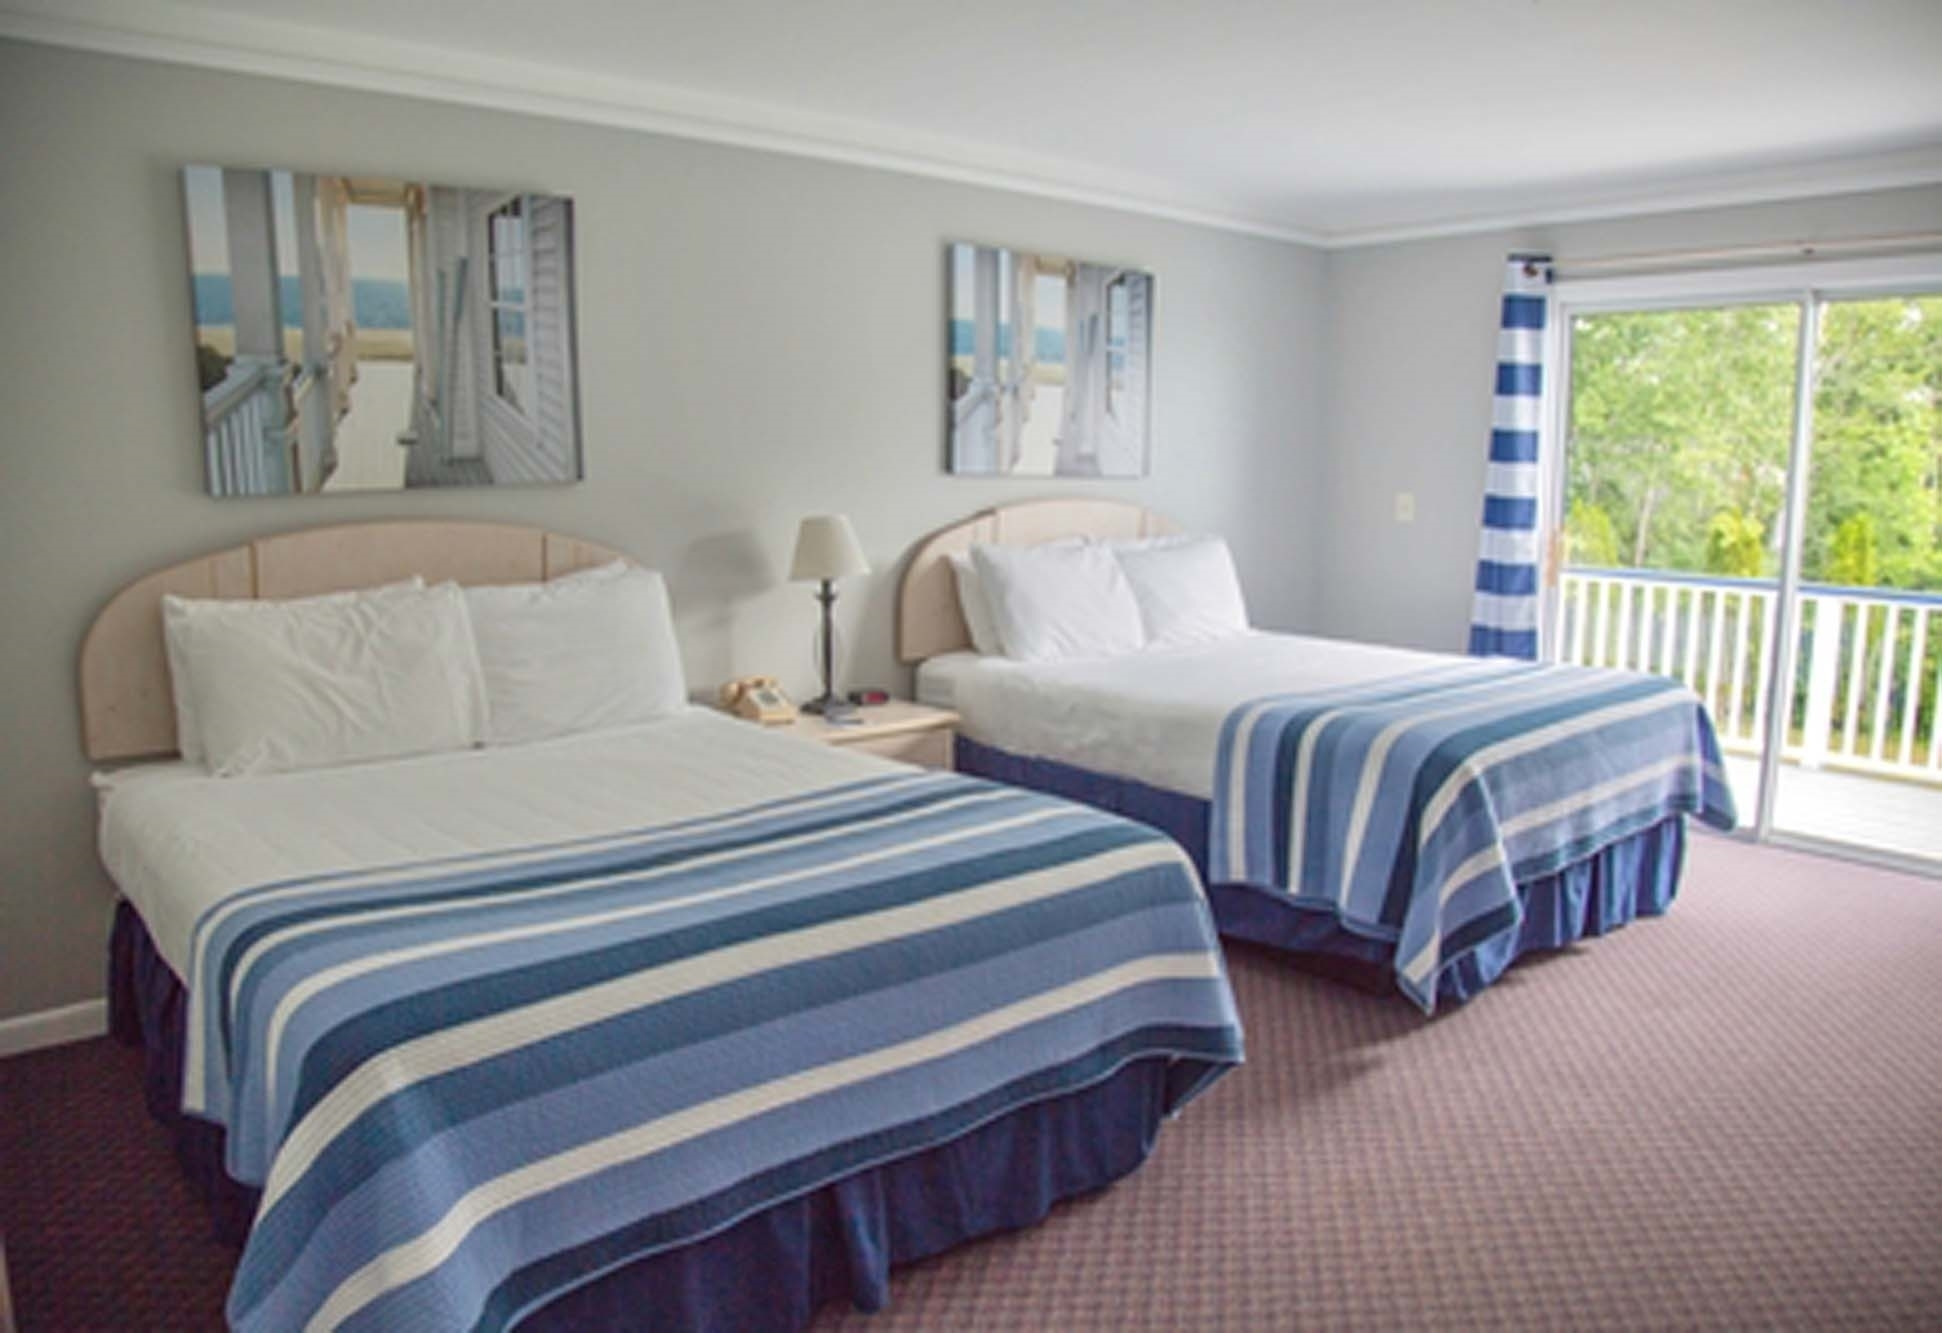 Image for Motel Room, 2 Queen Beds